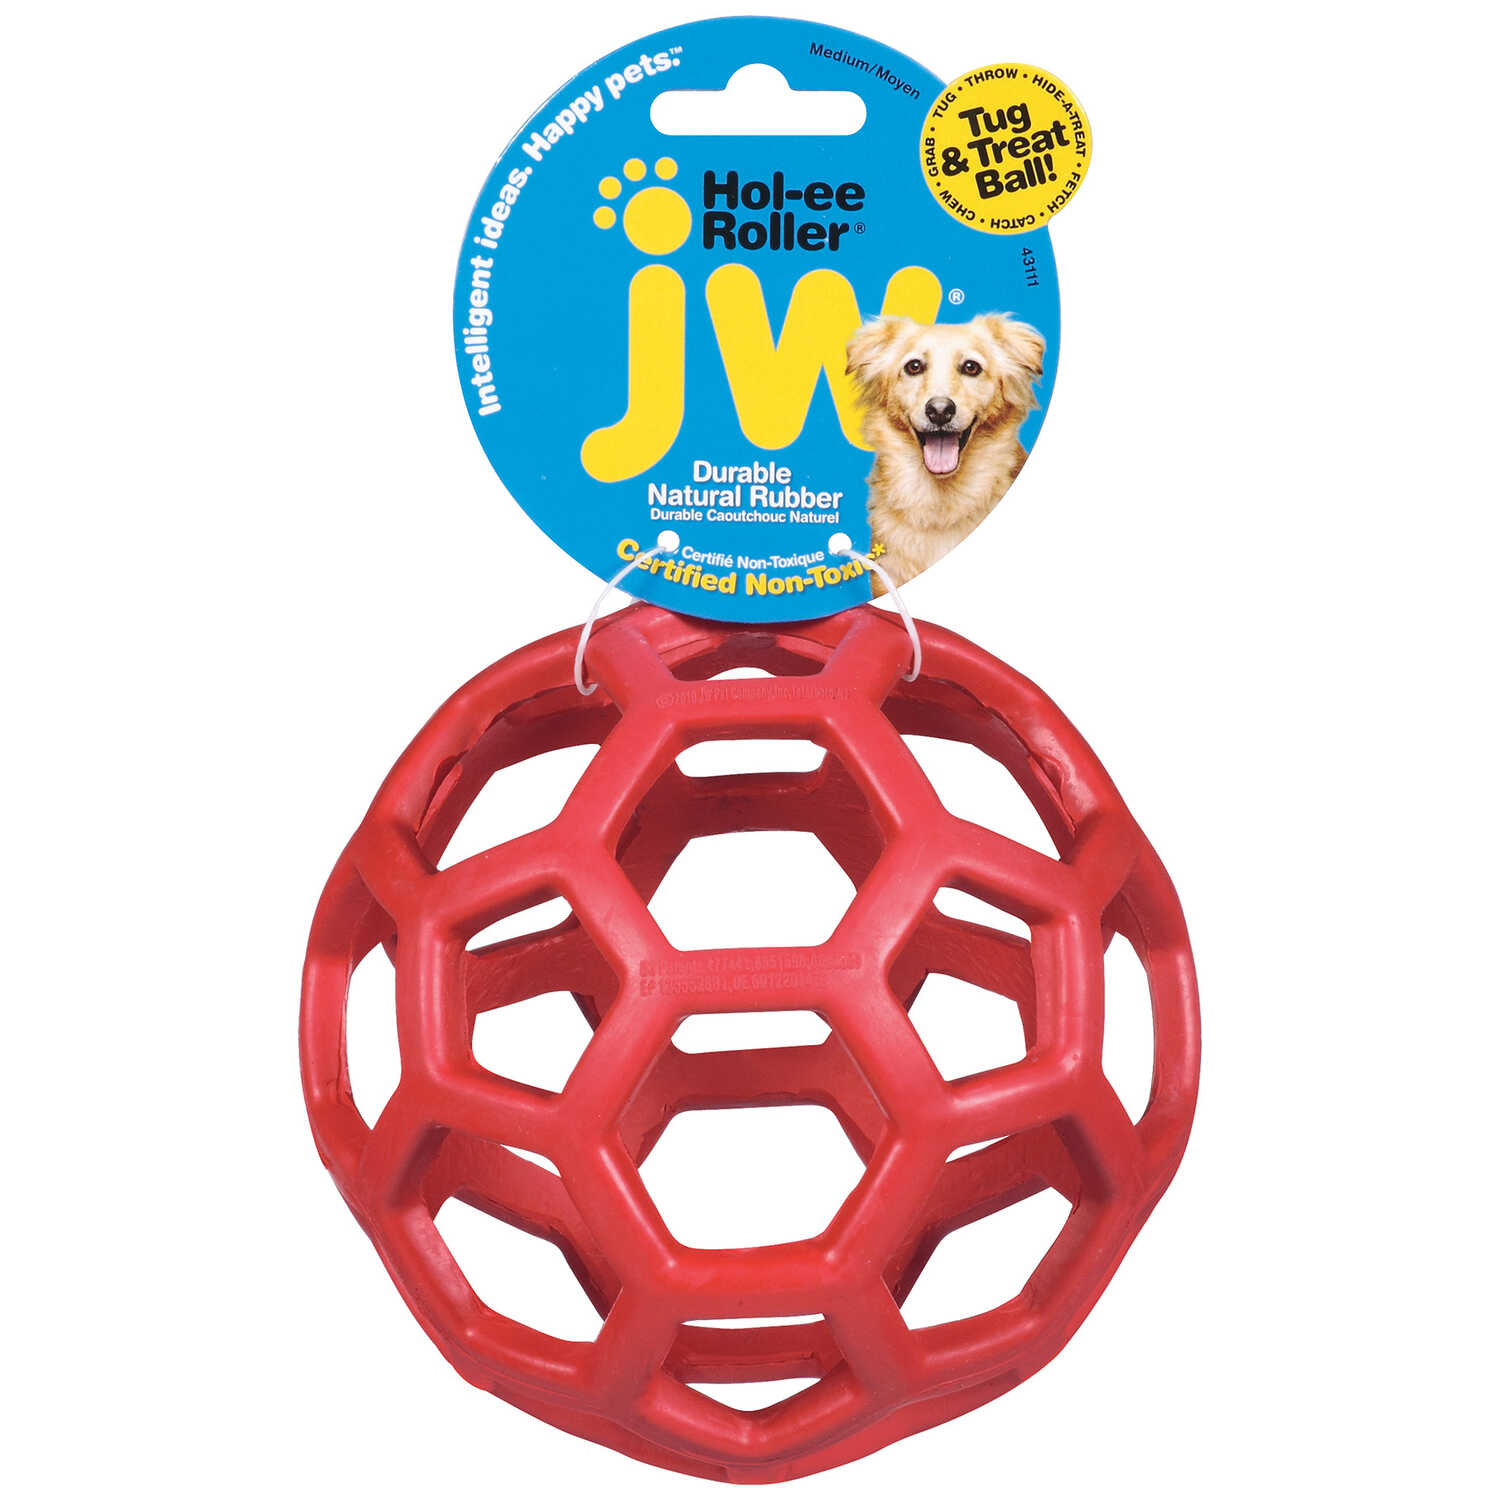 JW Pet  Red  Hol-ee Roller Ball  Rubber  Medium  Treat Holding Toy